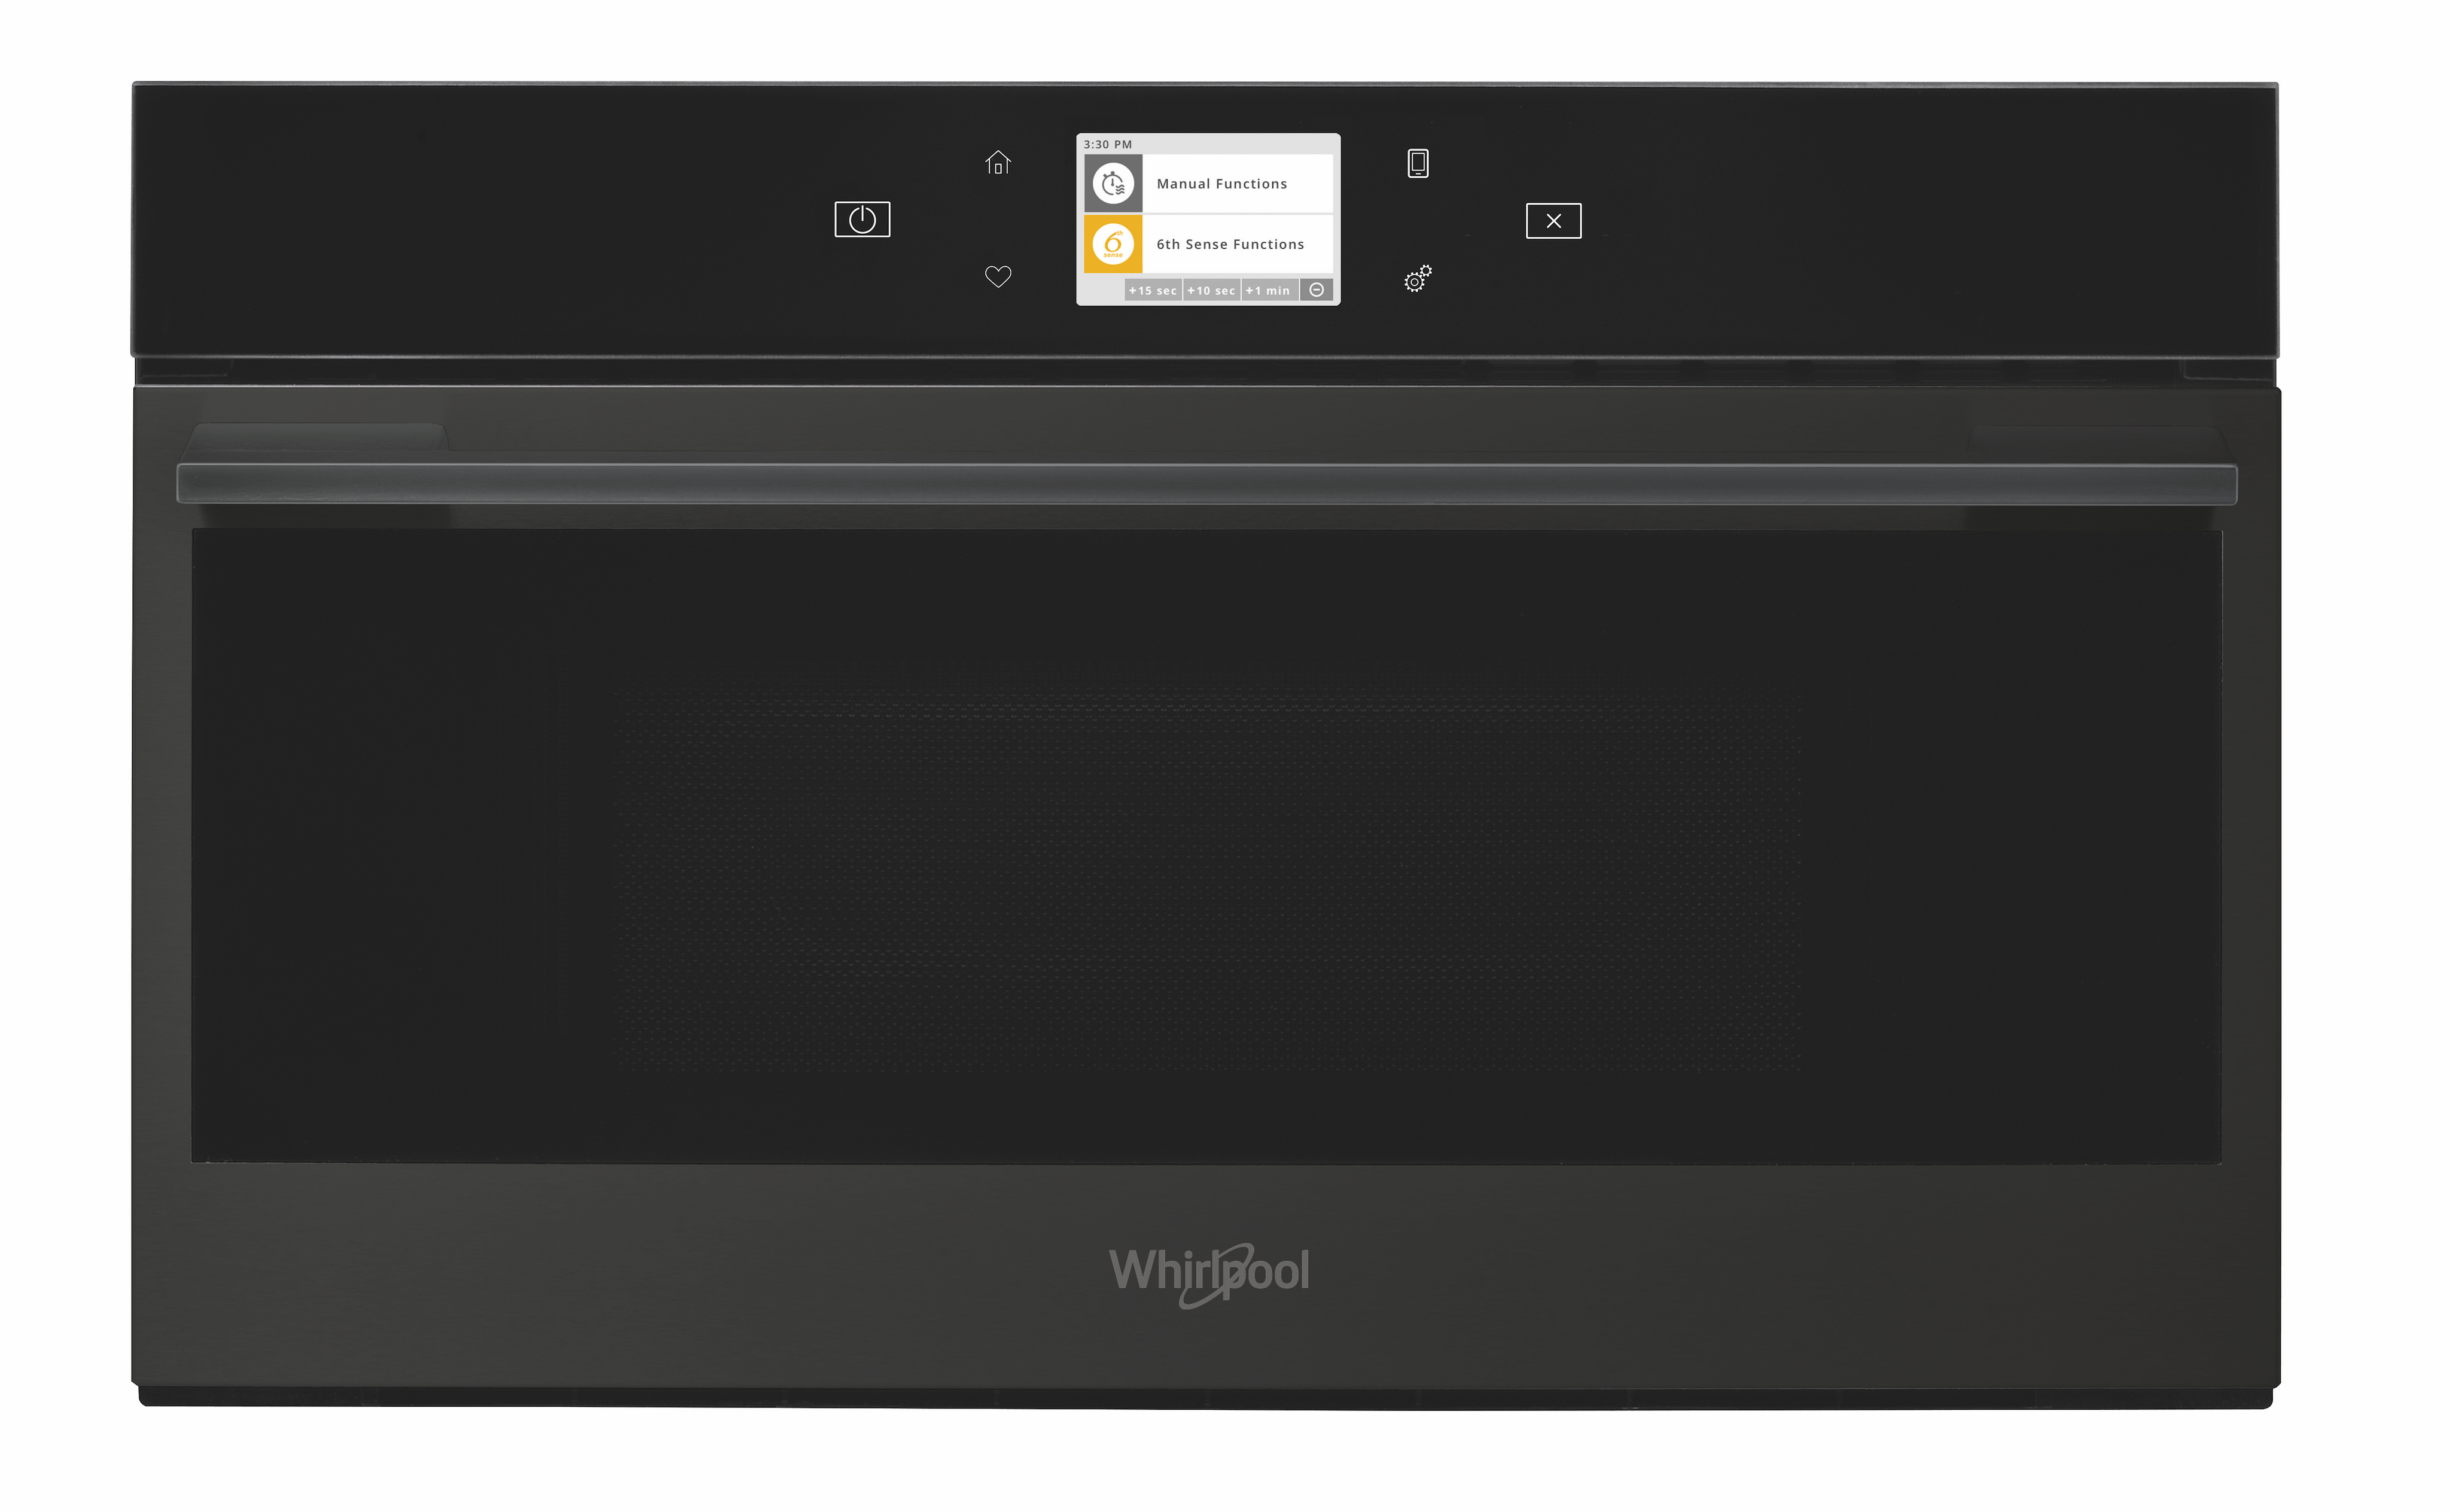 Whirlpool W Collection Black Fiber Range